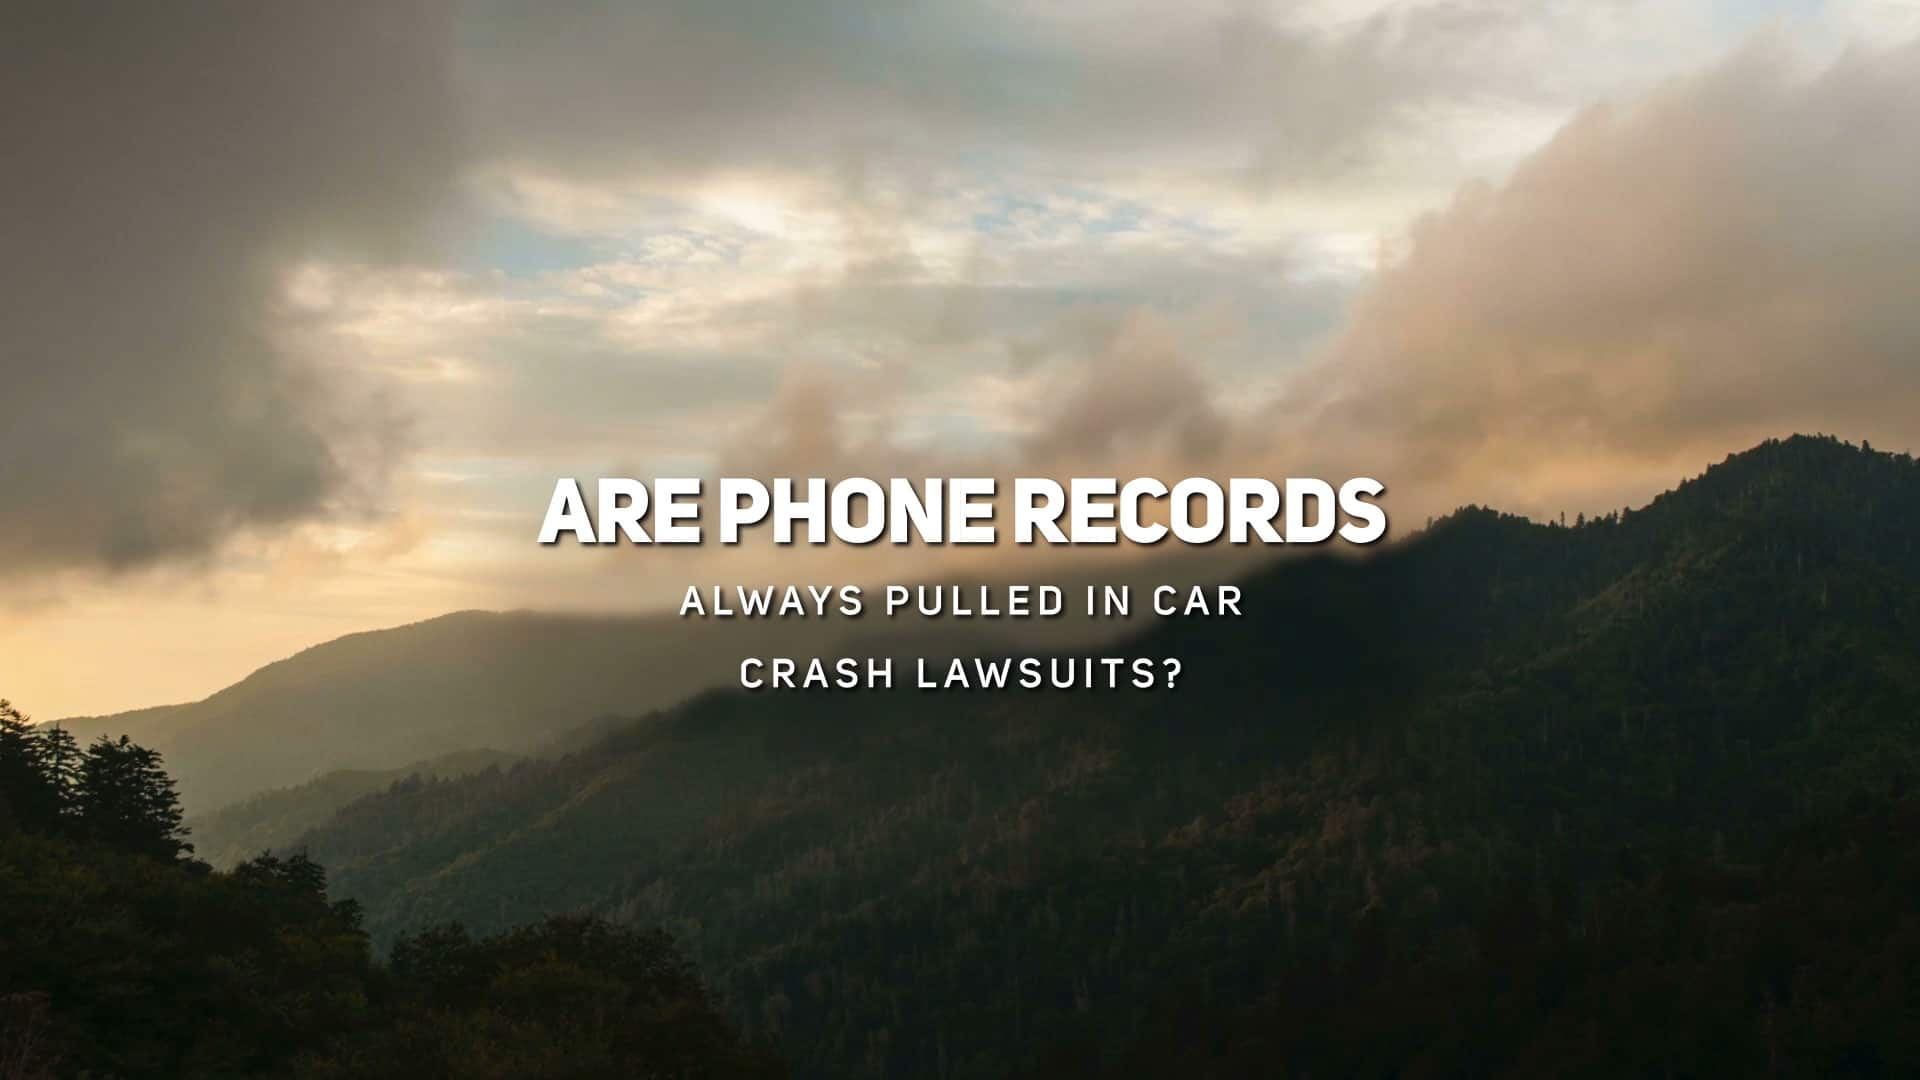 Are Phone Records Always Pulled in Car Crash Lawsuits